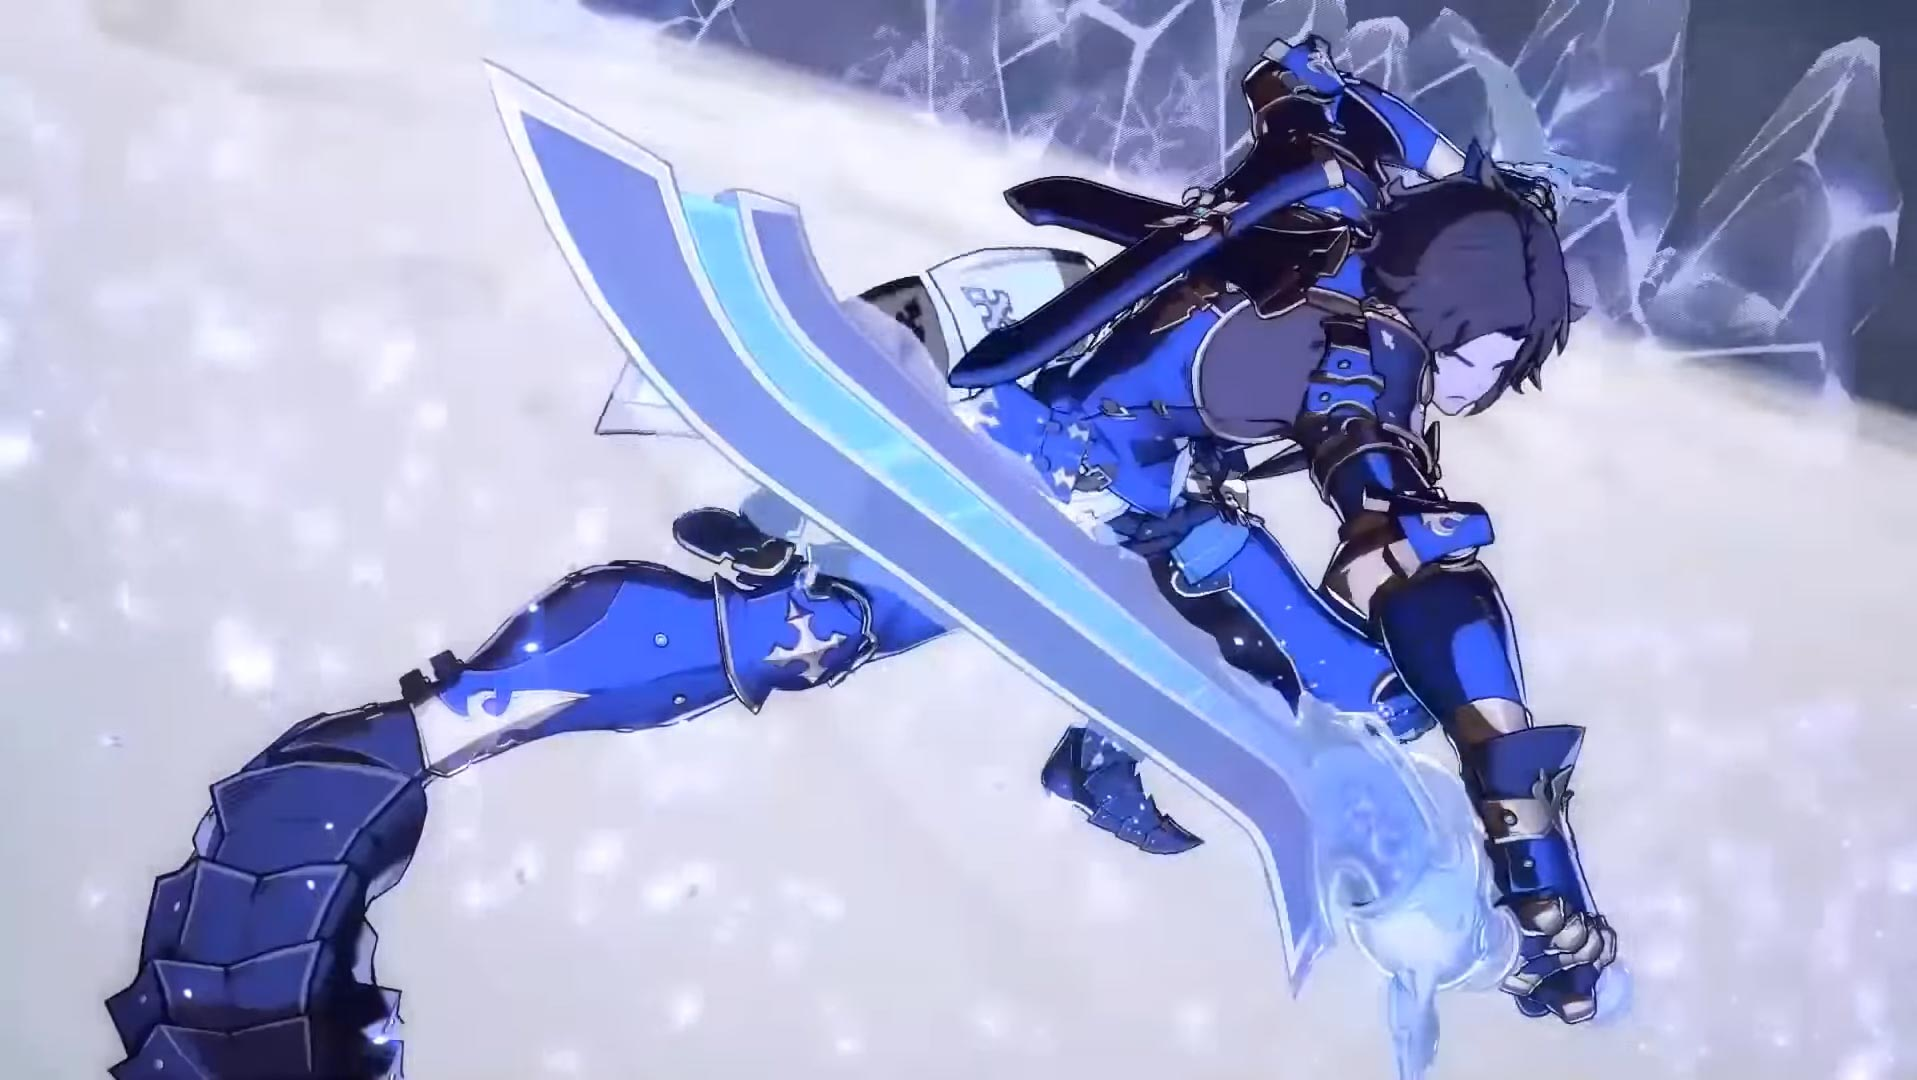 Lancelot and Ferry character trailer for Granblue Fantasy Versus 6 out of 6 image gallery